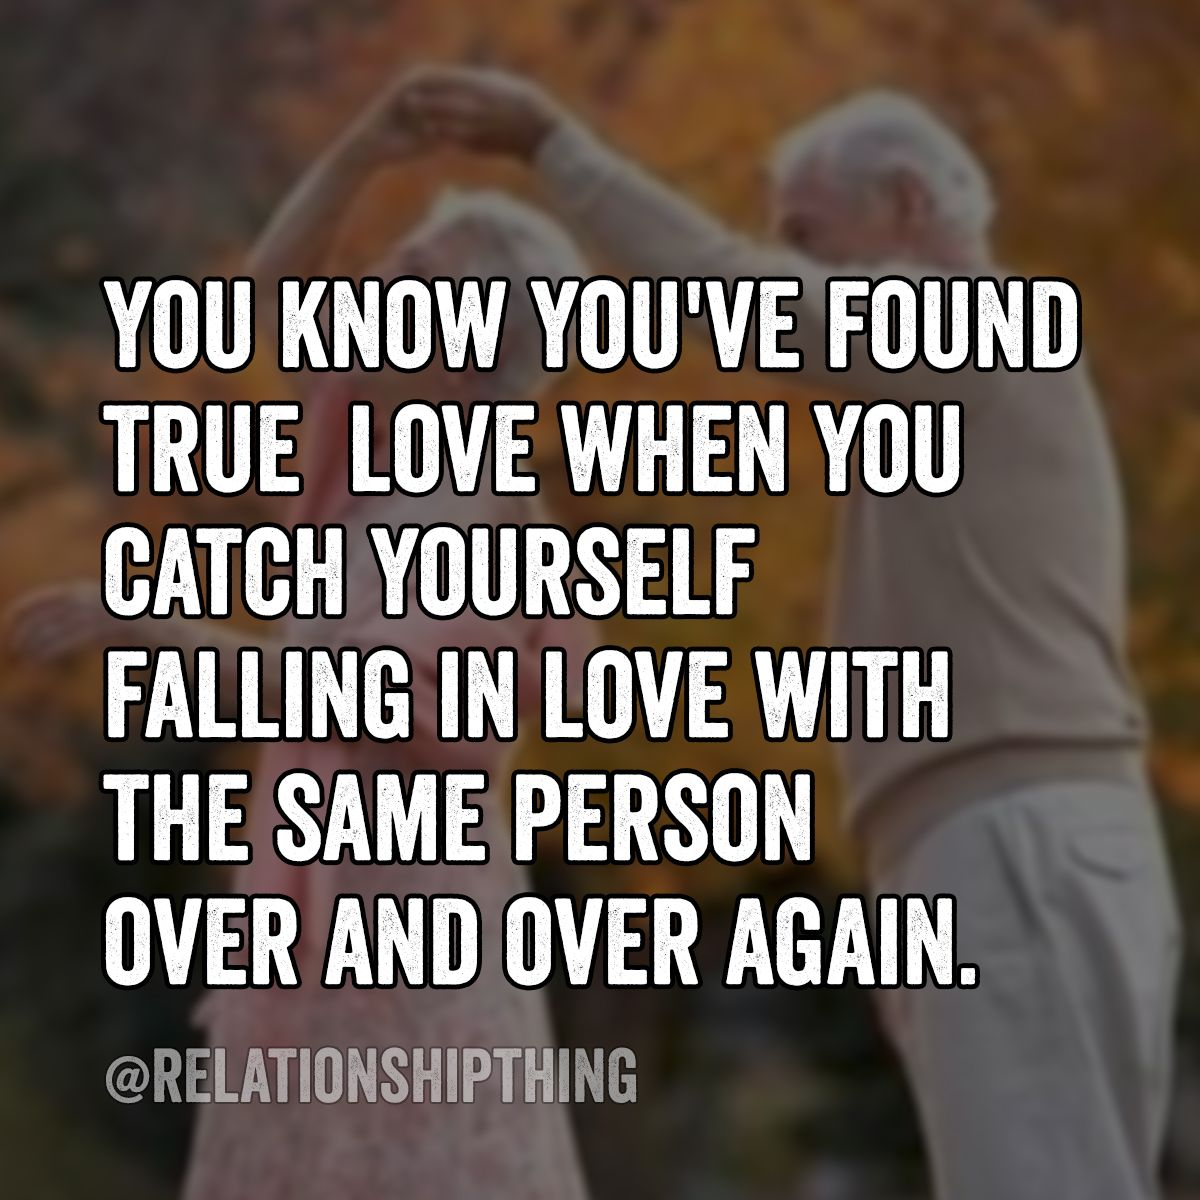 Found True Love Quotes You Know You've Found True Love When You Catch Yourself Falling In